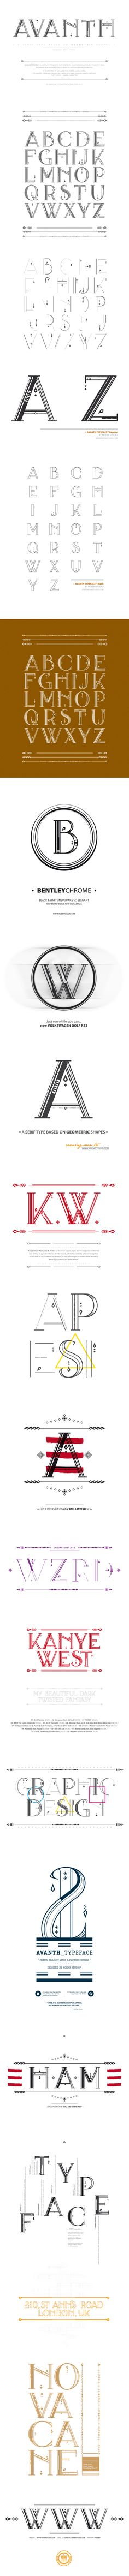 AVANTH typeface by Noem9 Jose Garrido || Weekly typography inspiration for…